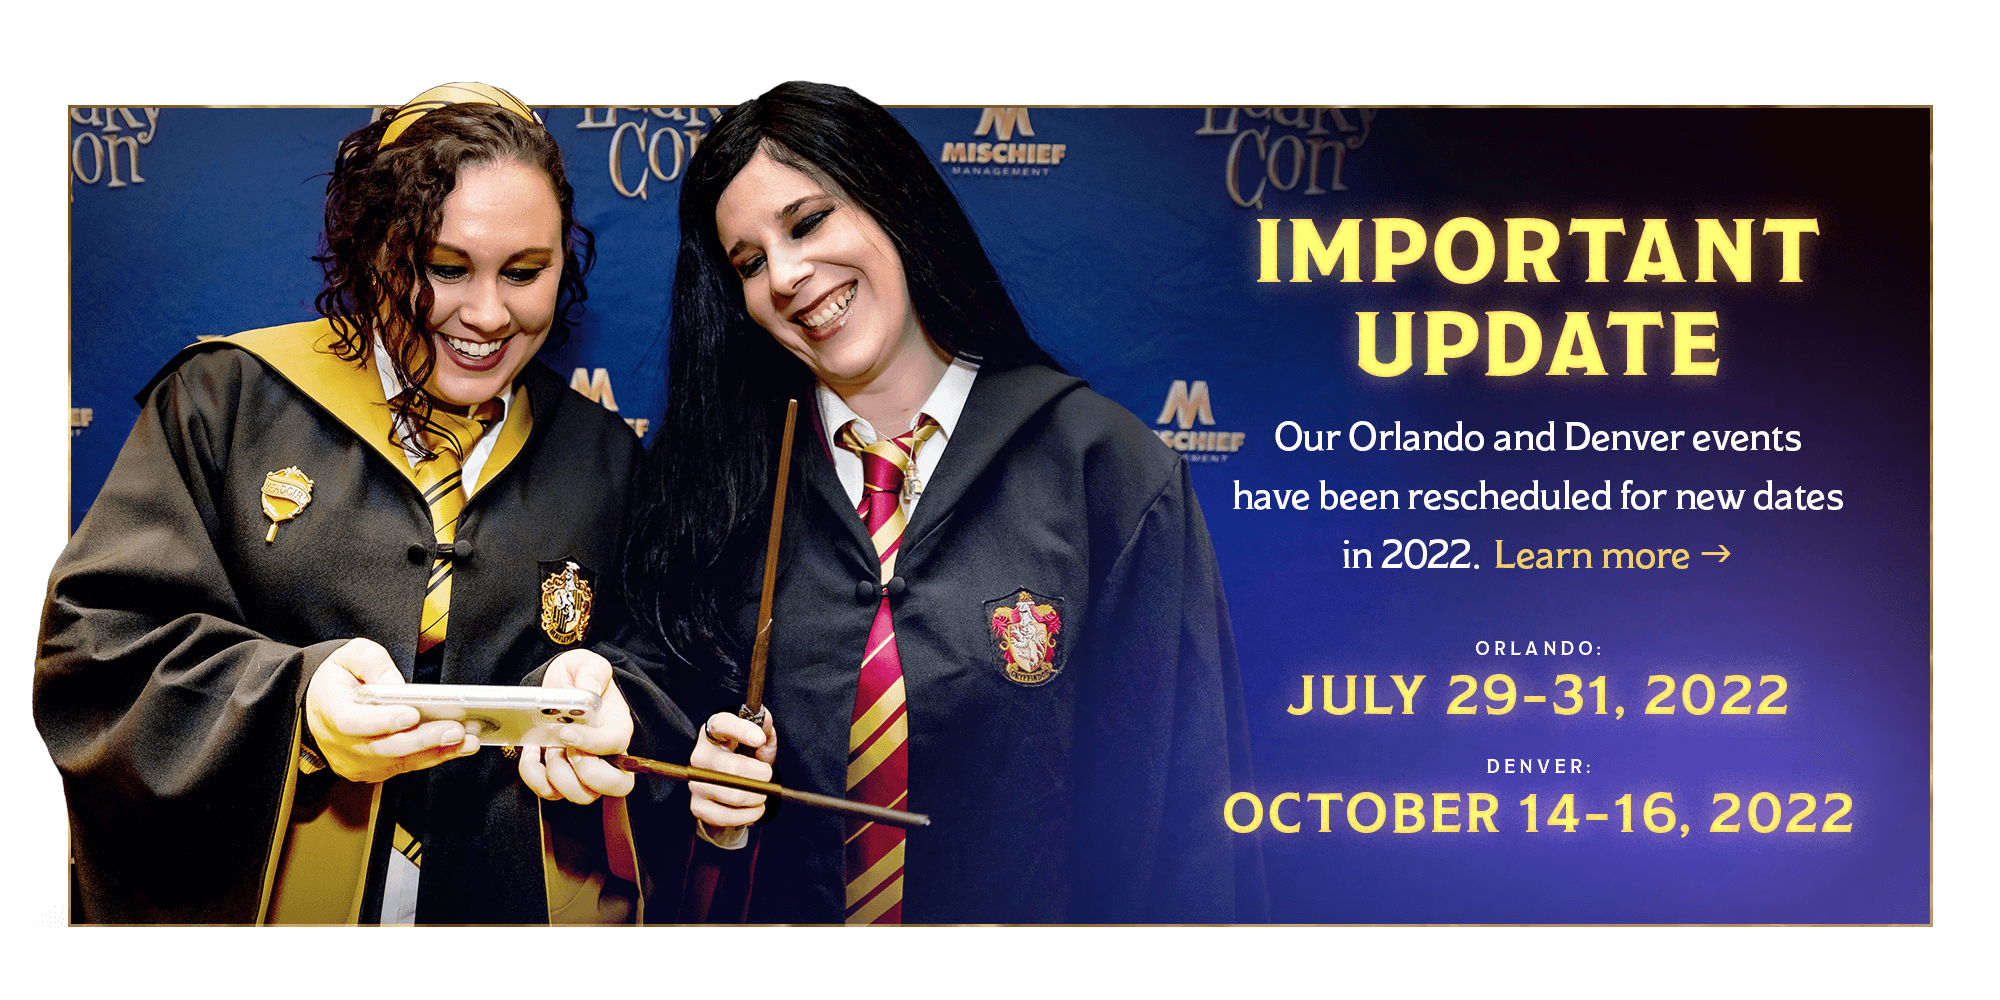 Important Update: LEAKYCON ORLANDO: July 29–31, 2022 and LEAKYCON DENVER: October 14-16, 2022